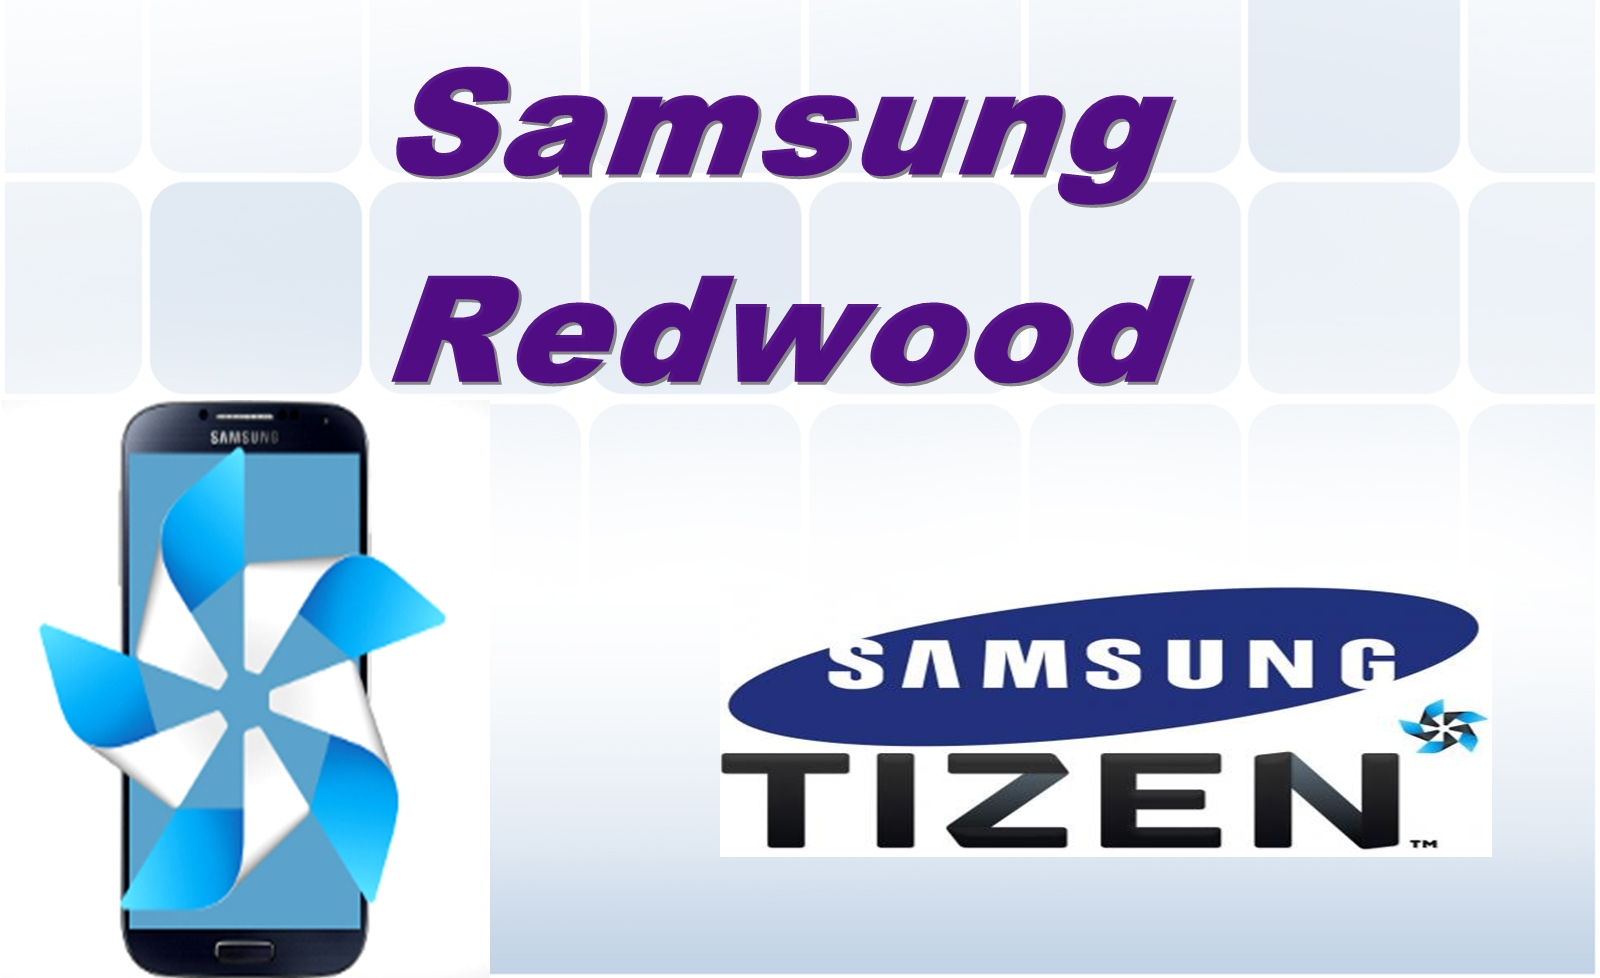 Samsung Redwood